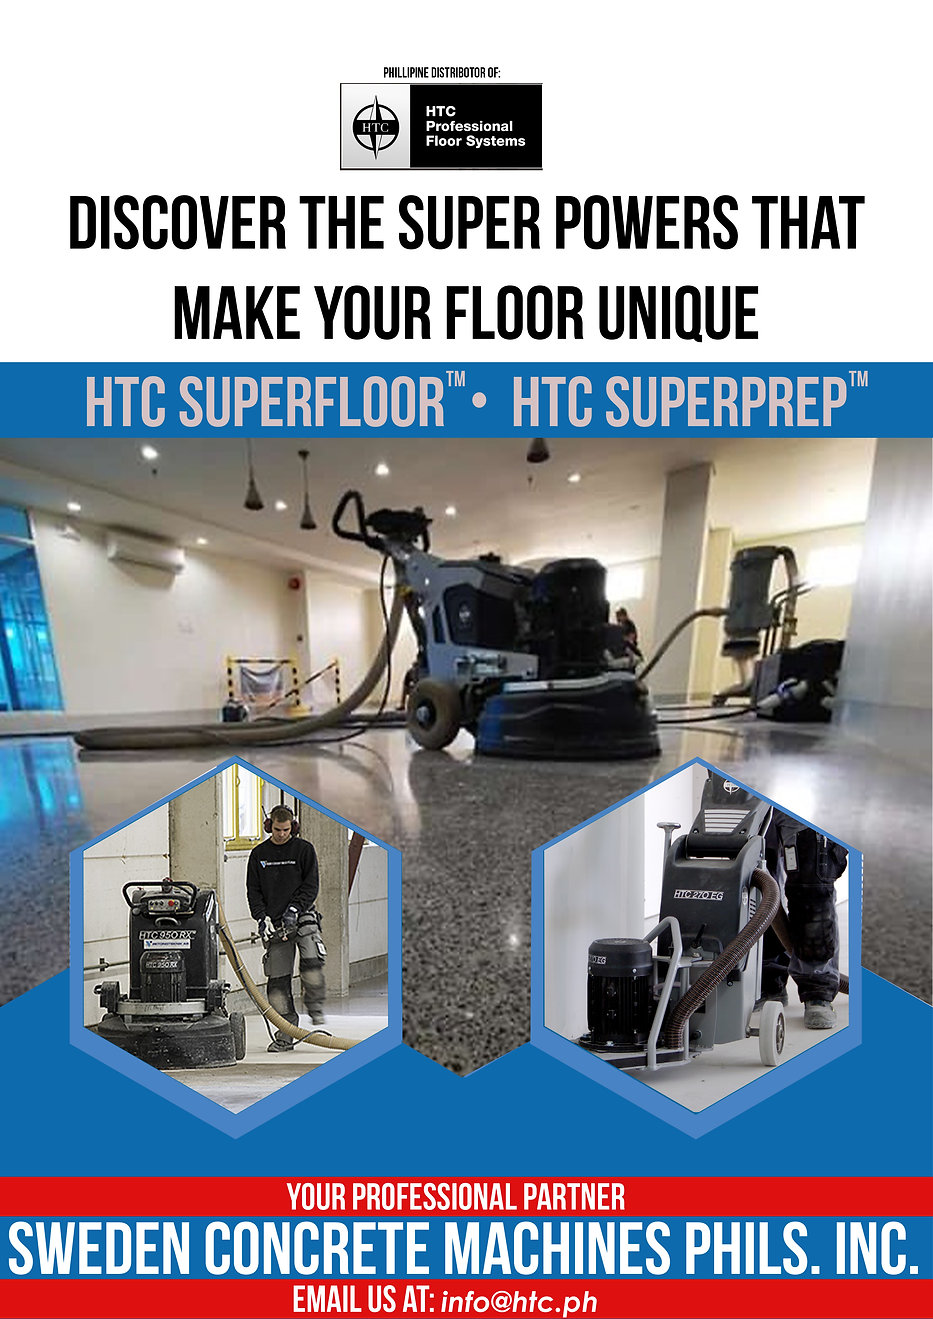 HTC Professional Floor Systems in Marikina